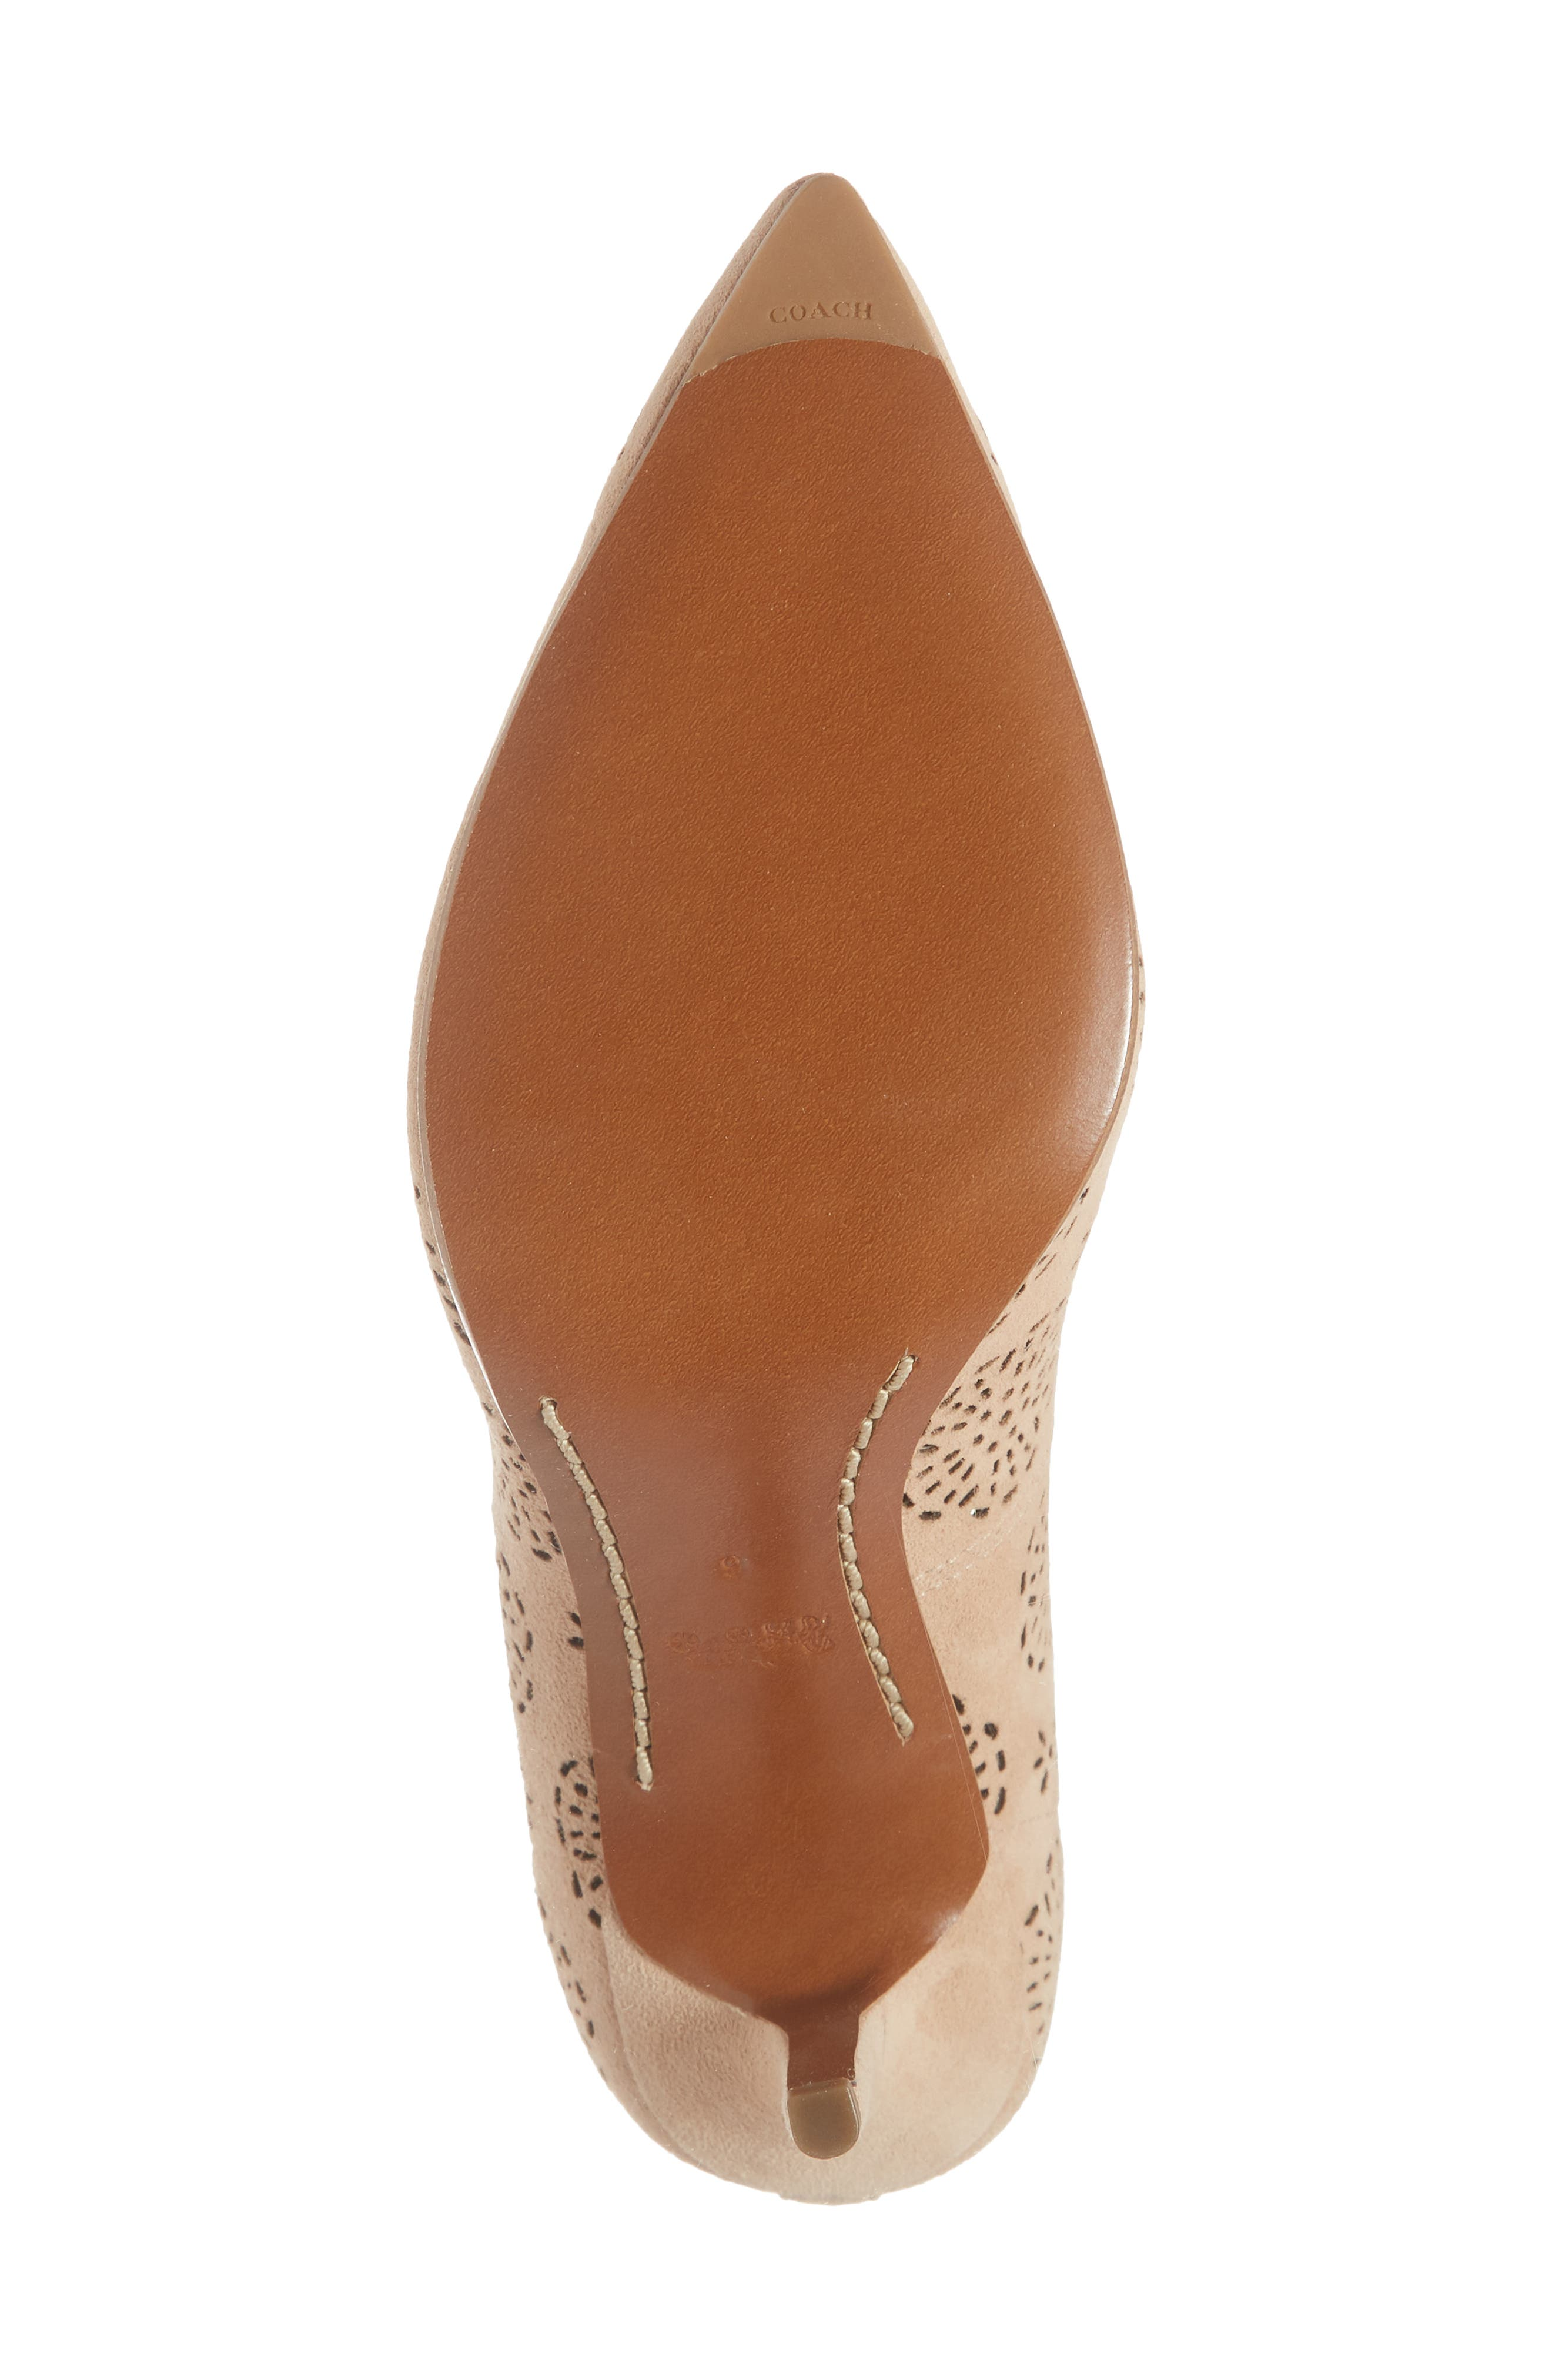 Waverly Tea Rose Perforated Pump,                             Alternate thumbnail 6, color,                             Beachwood Leather